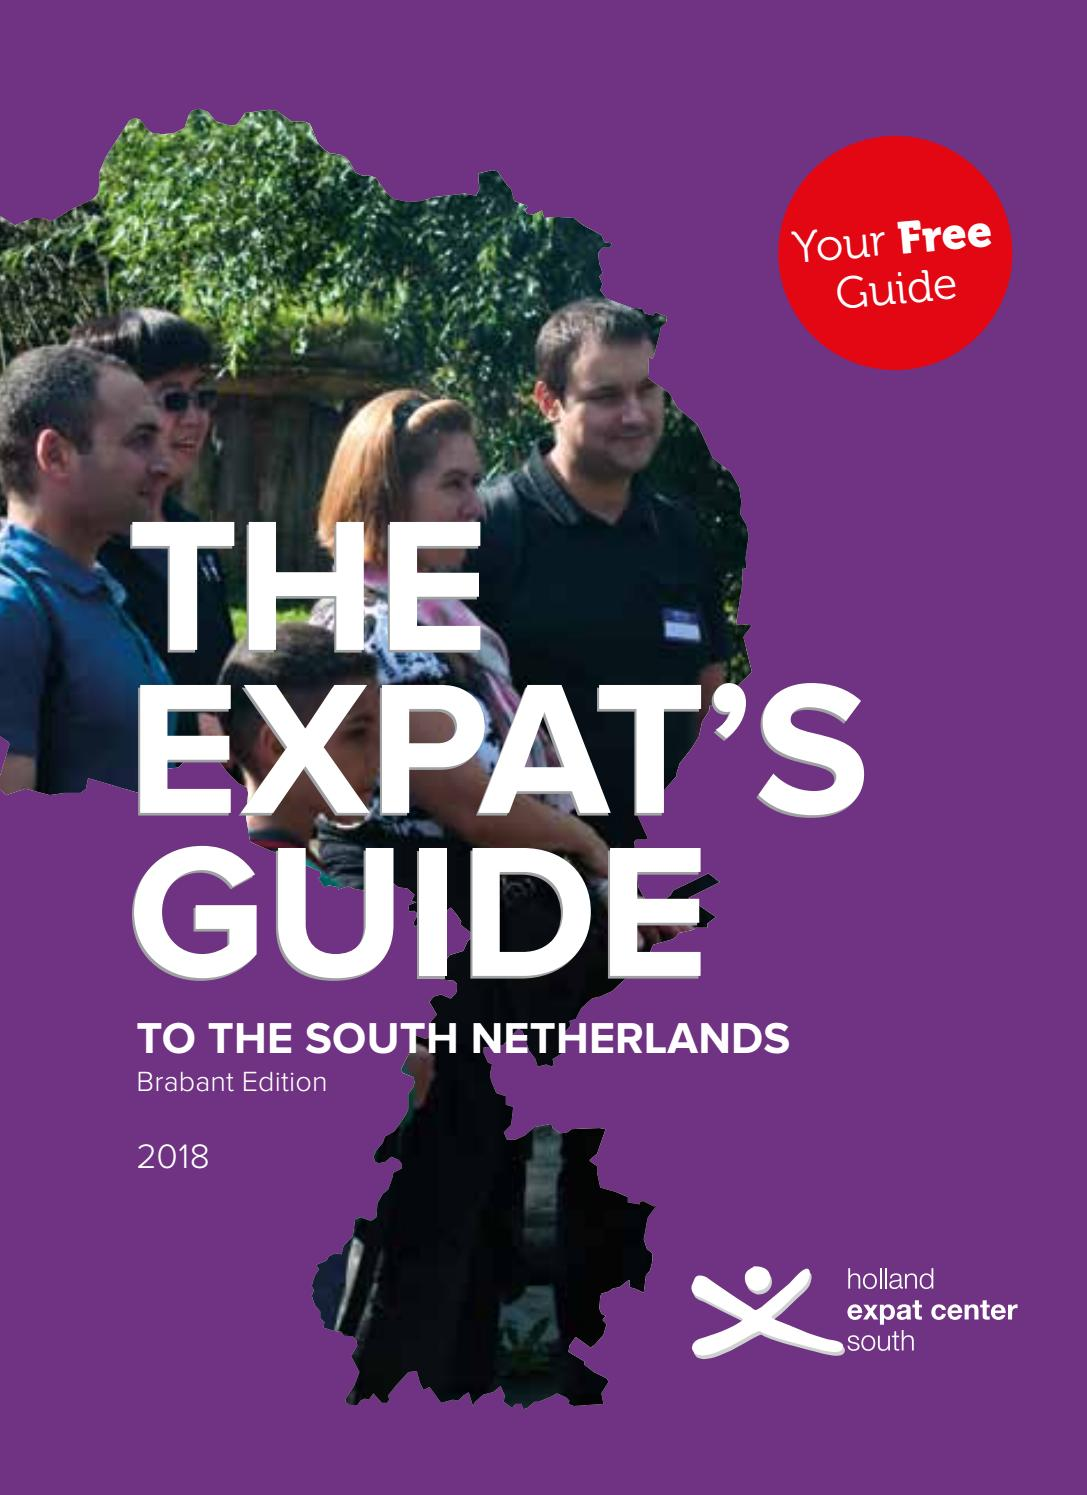 Glaze Tv Meubel.The Expat S Guide Brabant Edition July 2018 By Holland Expat